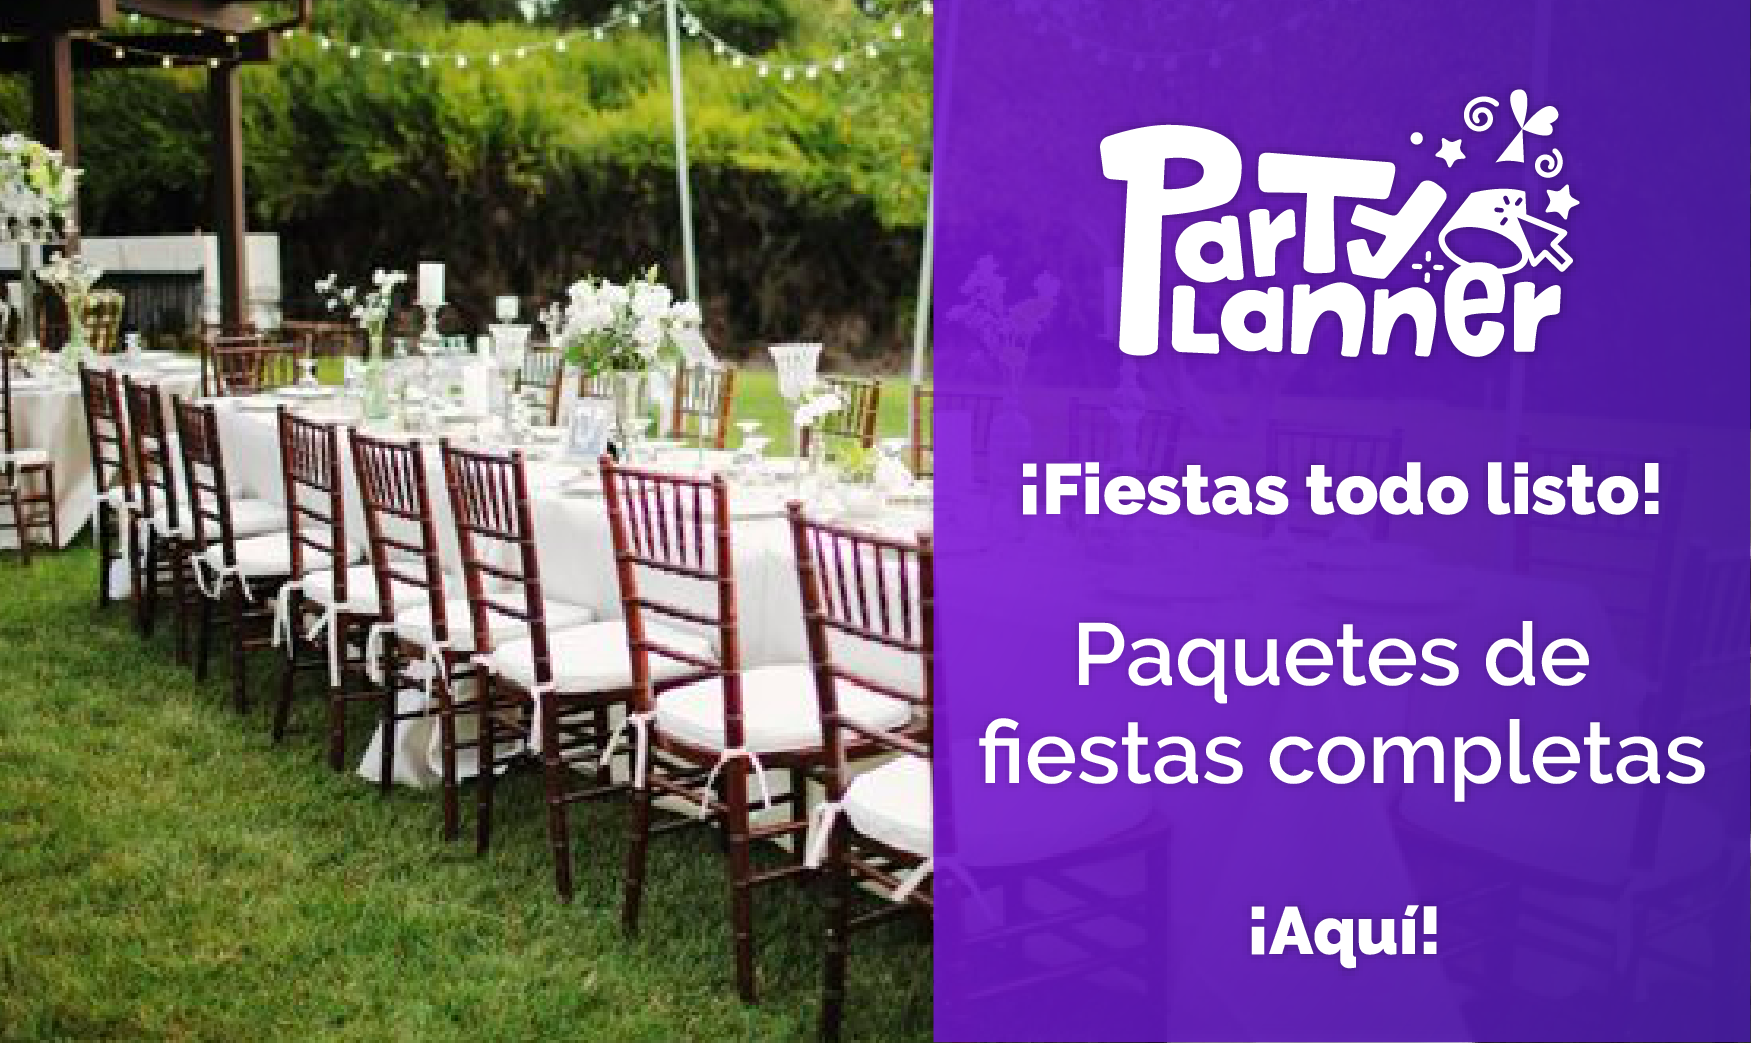 subbanner1-paquetes-fiesta-completa-03.png